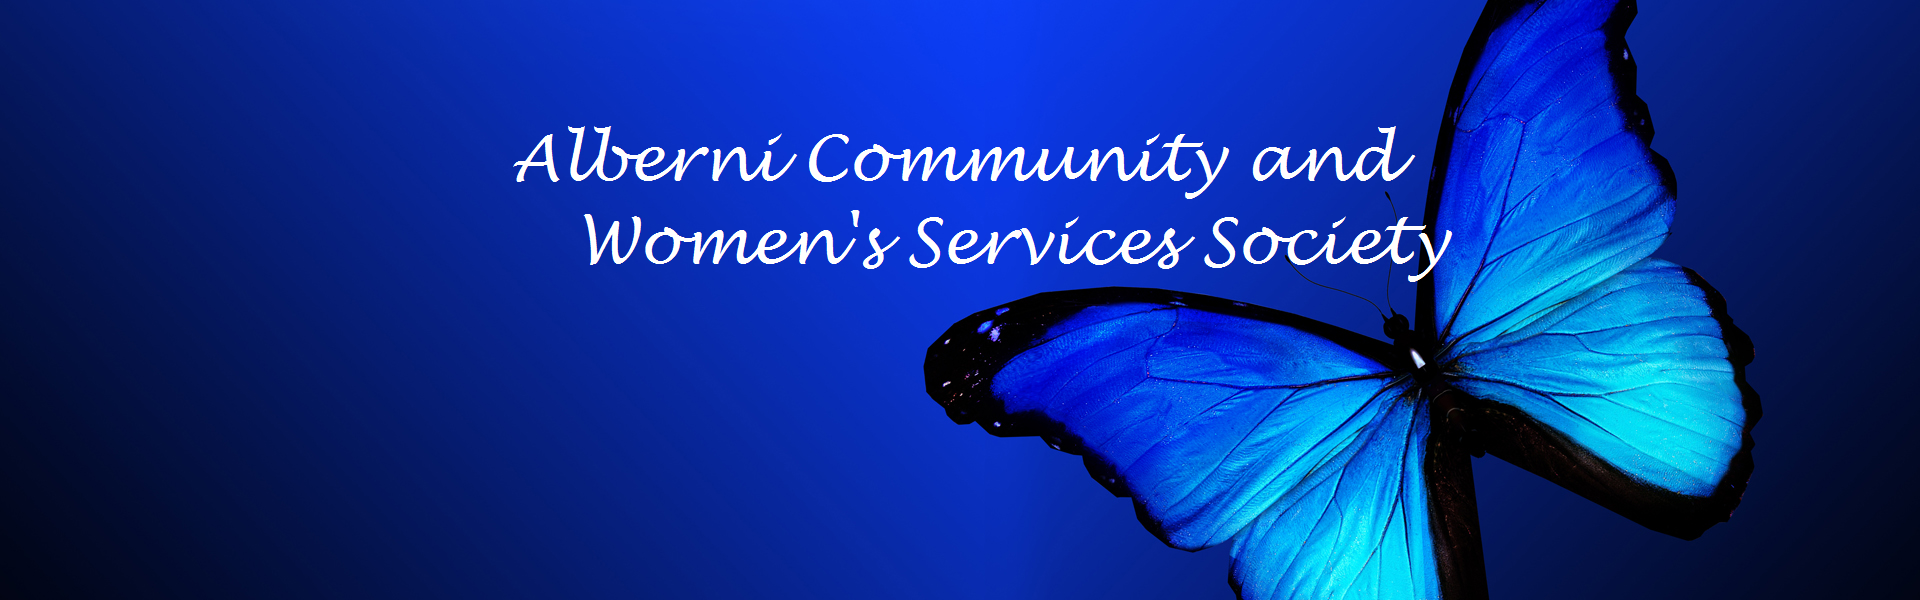 Alberni Community and Woman's Services Society